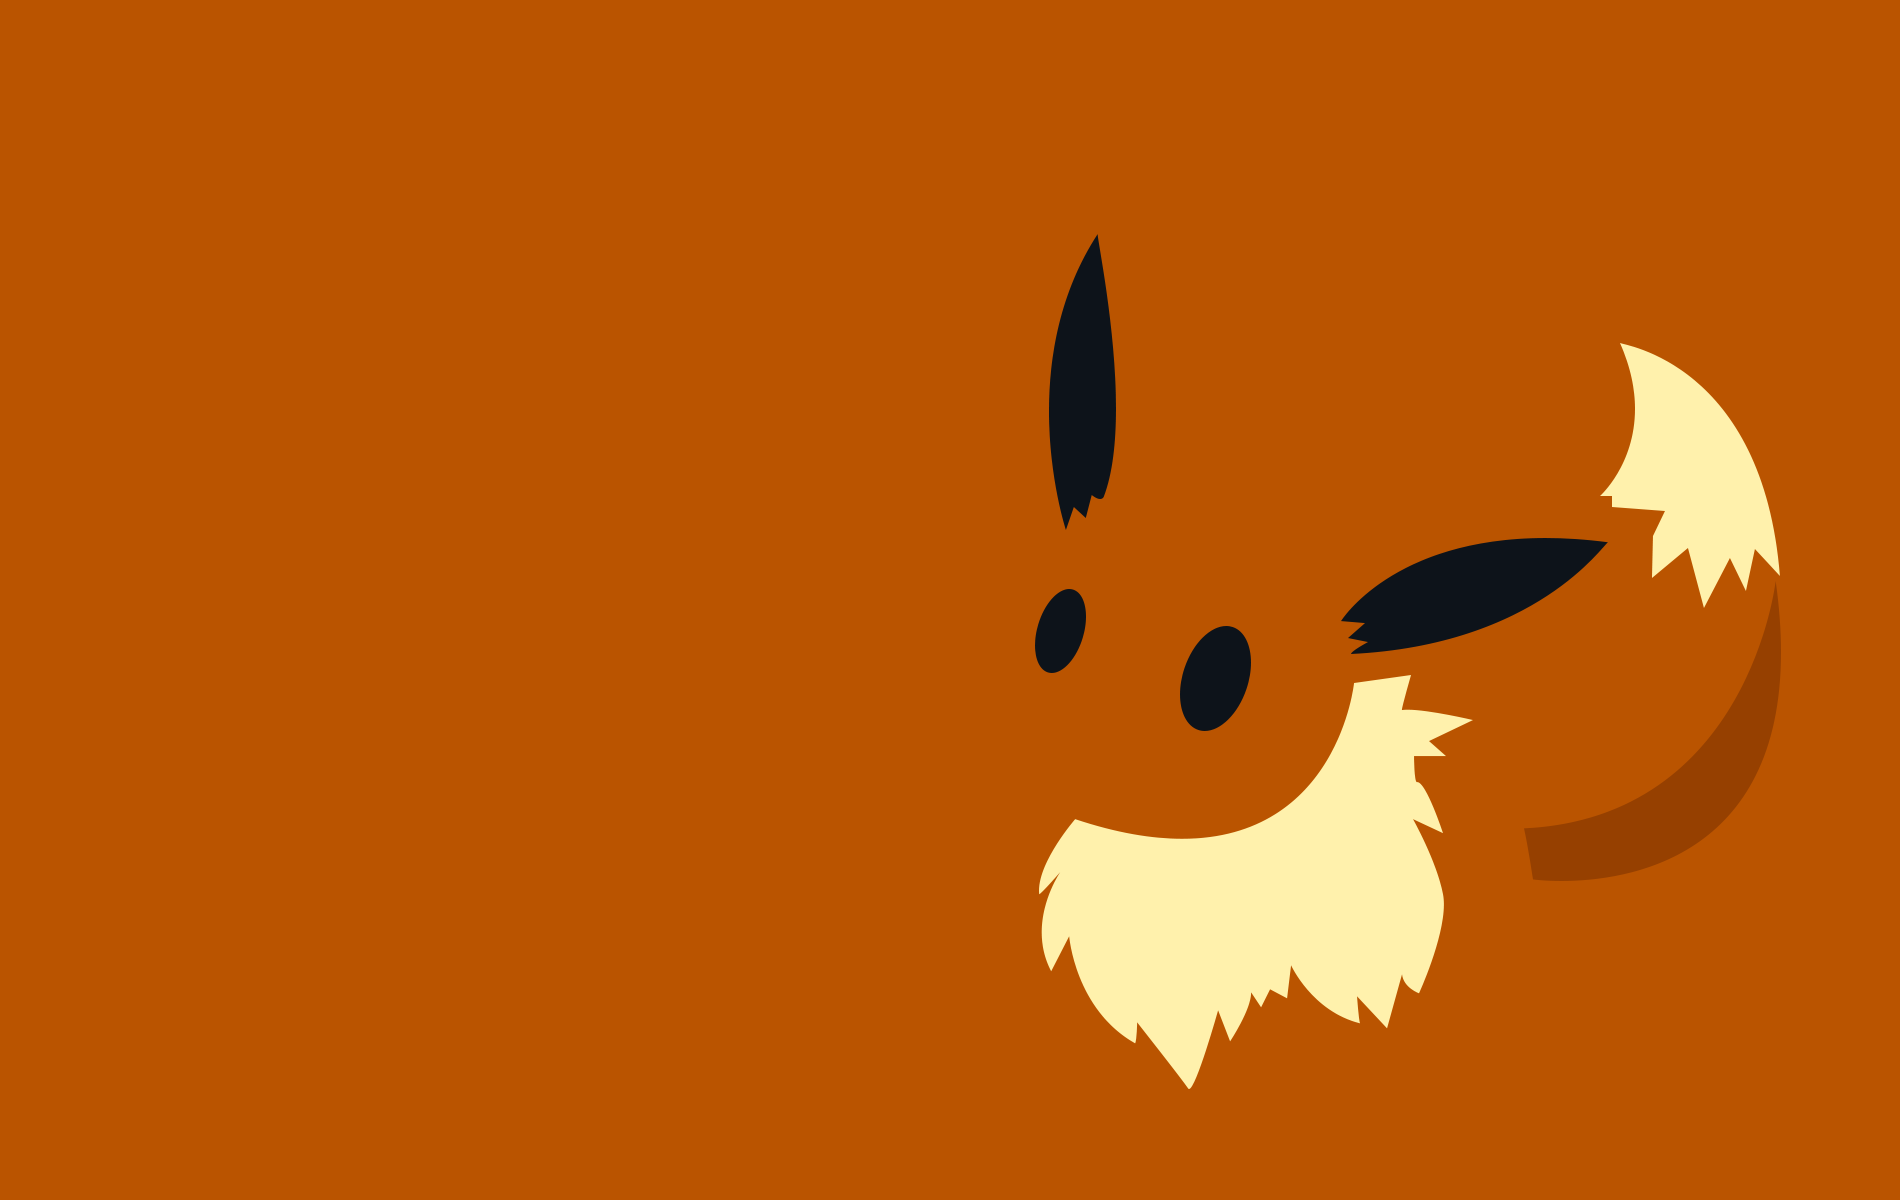 Eevee by PokeTrainerManro on DeviantArt